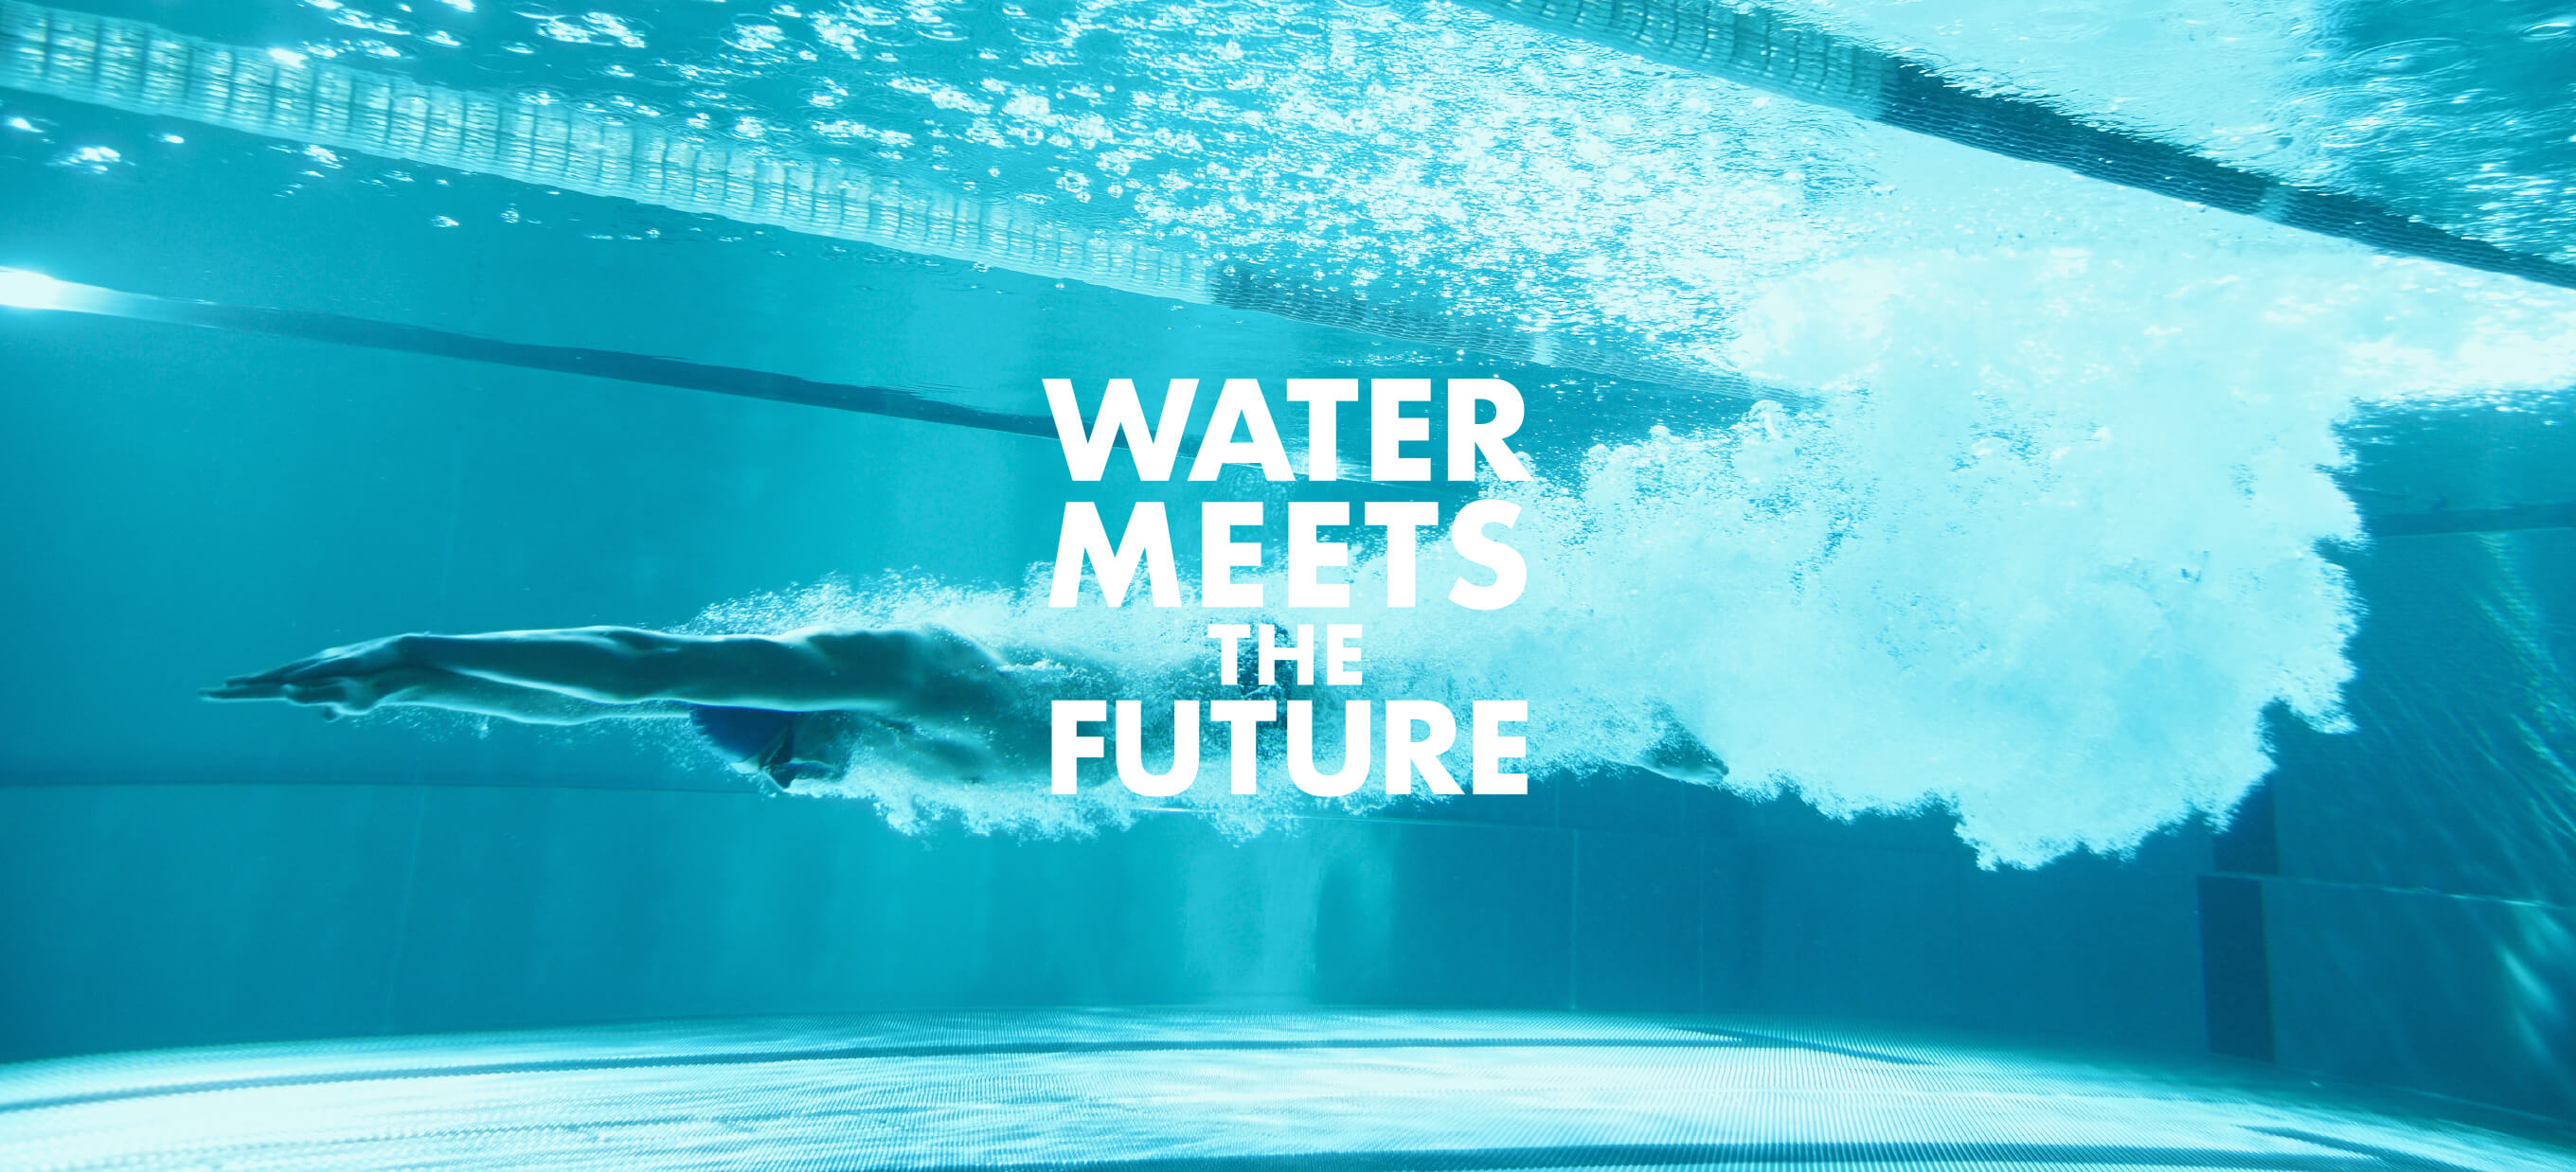 WATER MEETS THE FUTURES